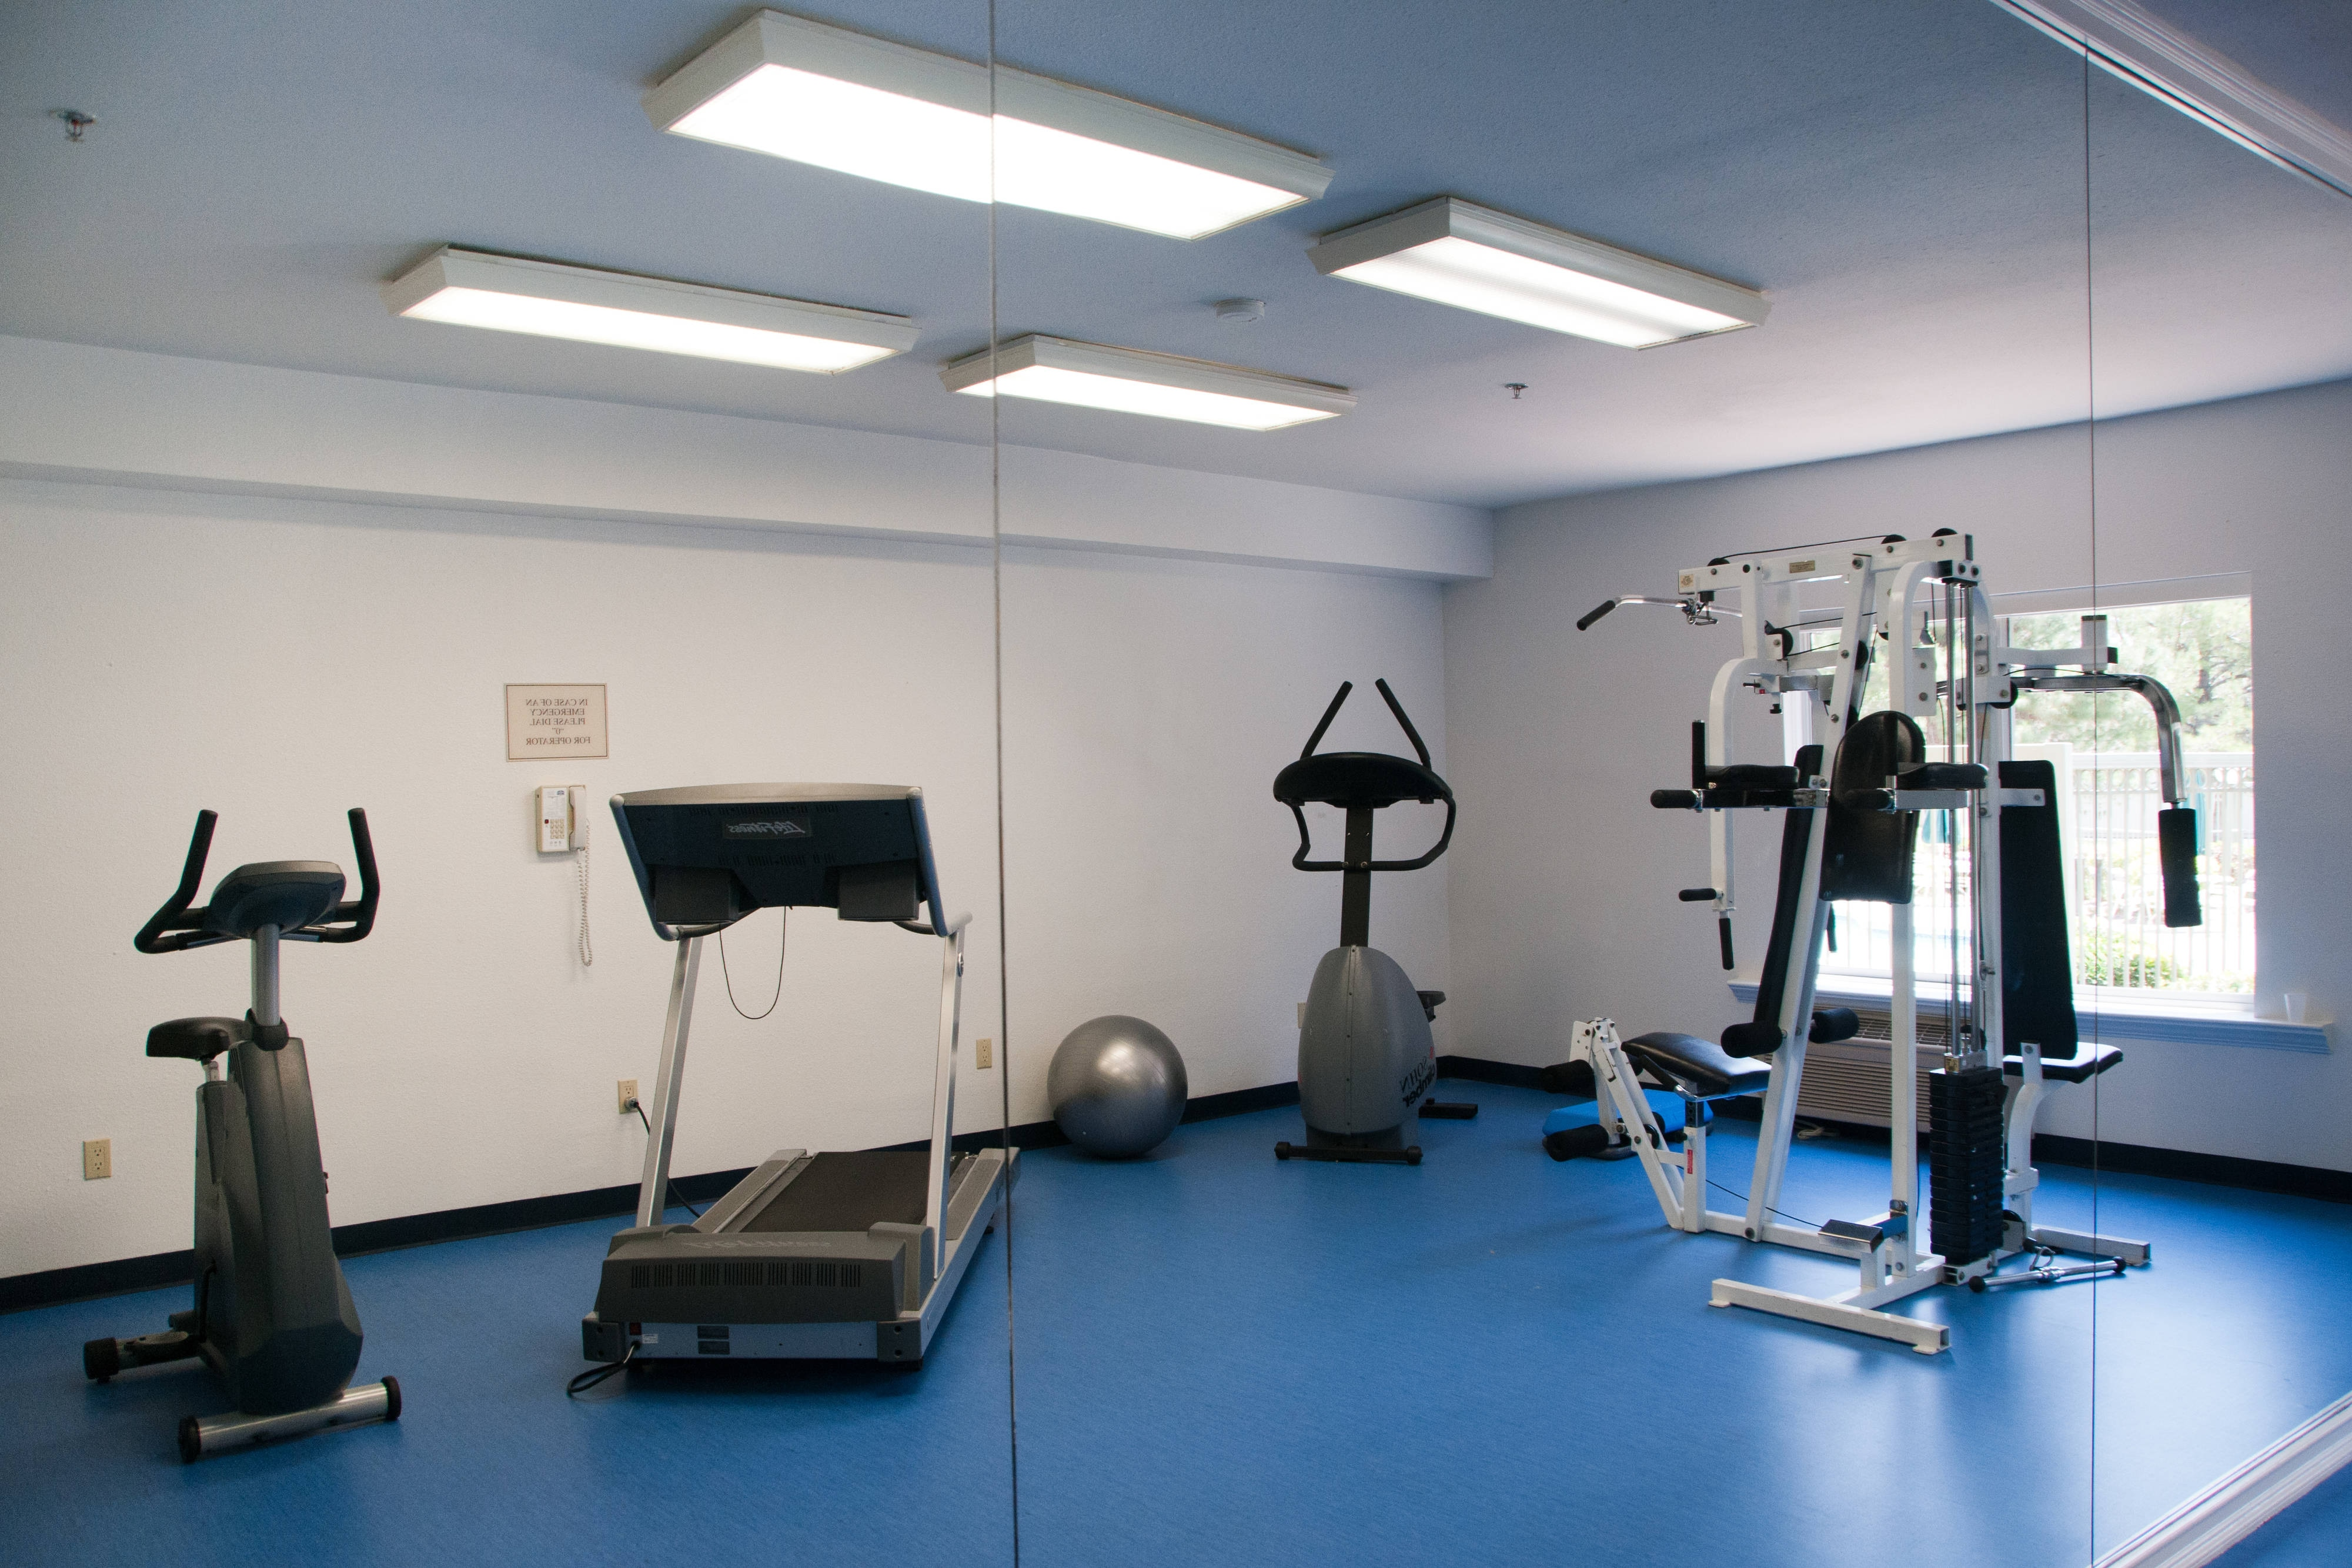 Las Cruces Fitness Center